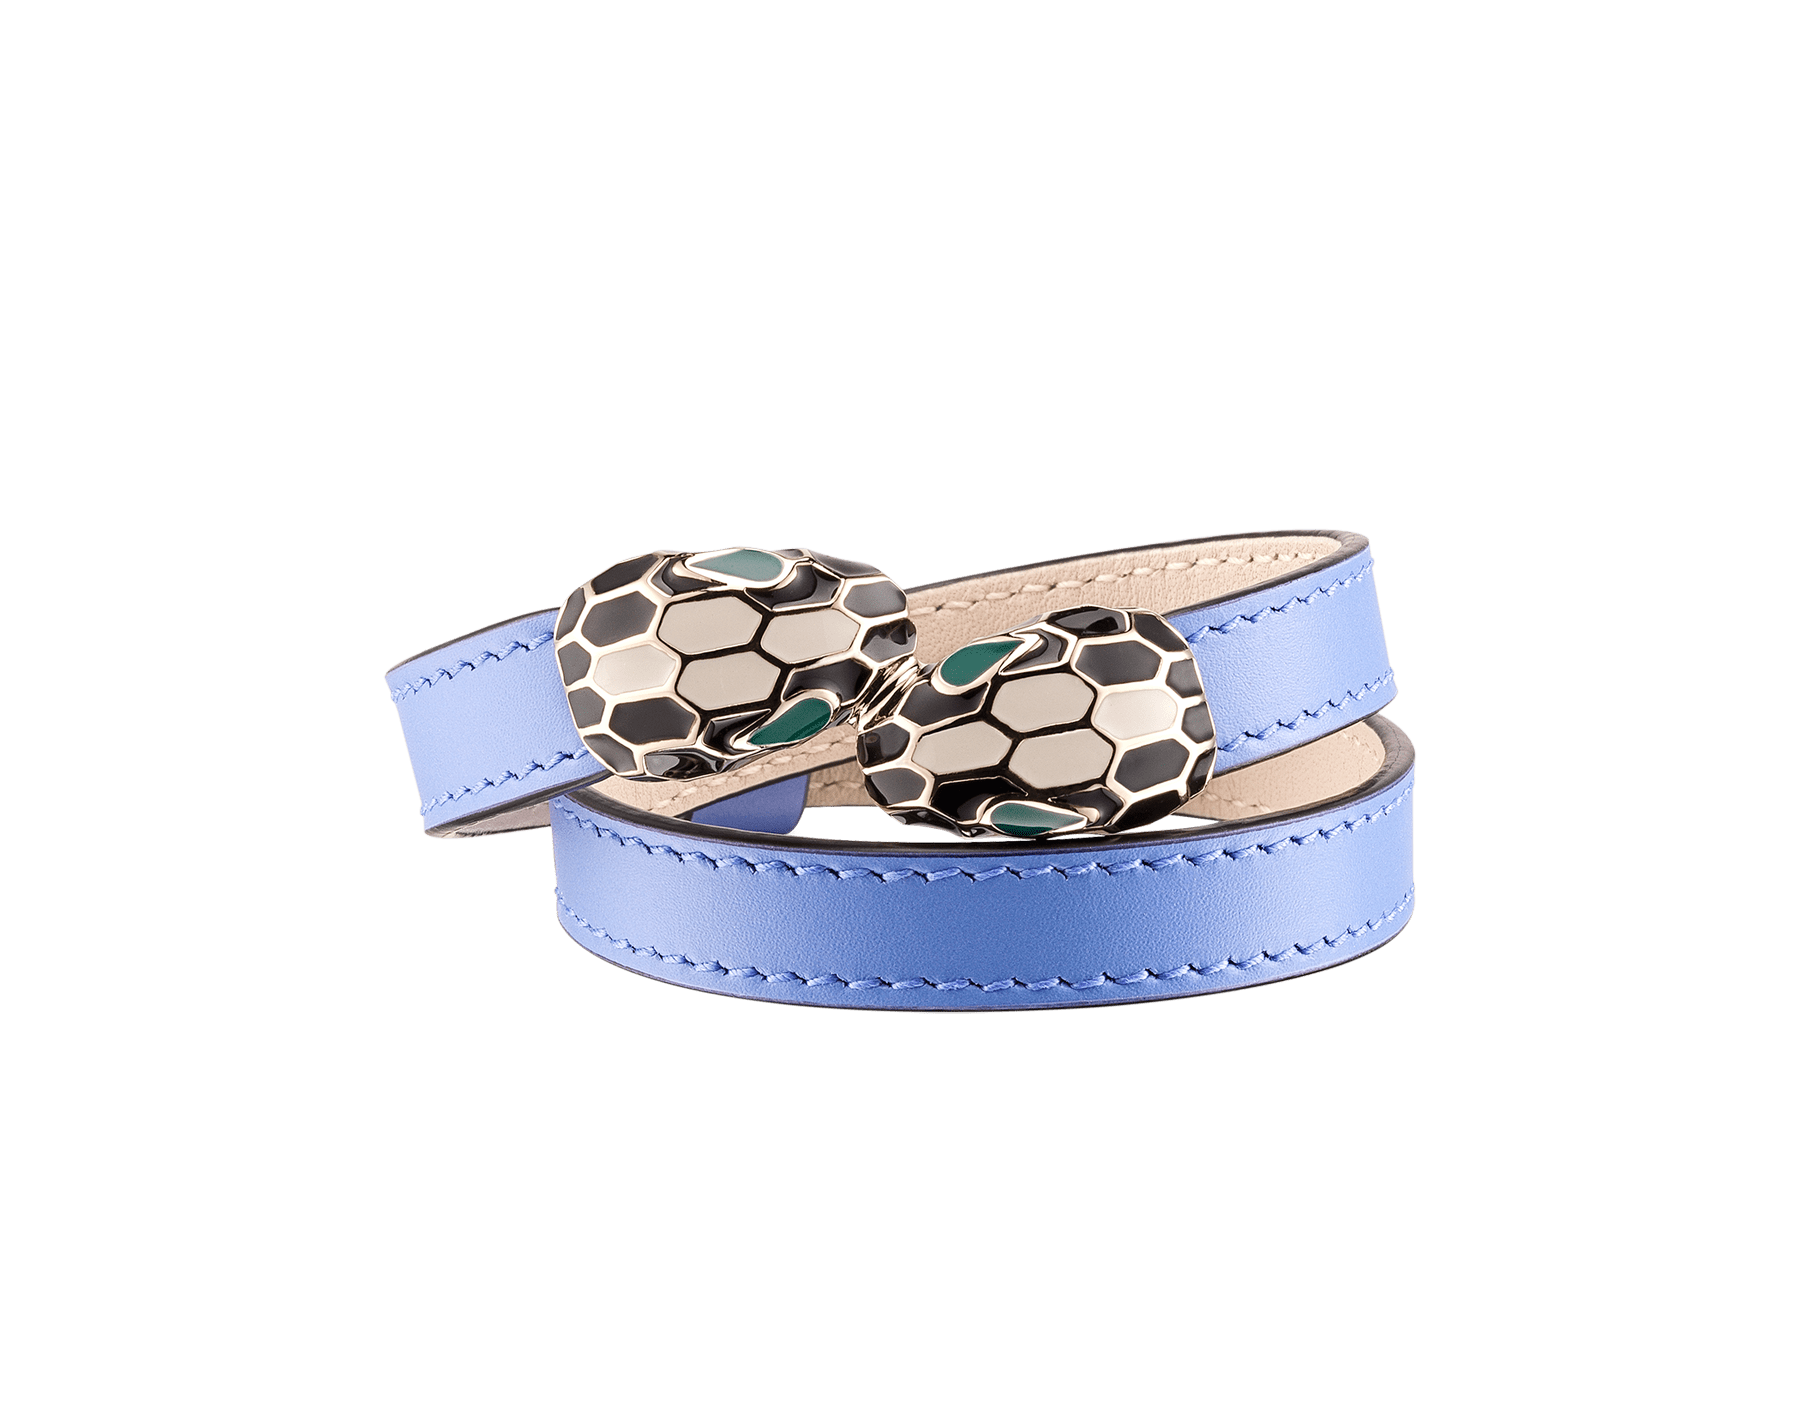 Serpenti Forever multi-coiled bracelet in mint calf leather, with light gold plated brass hardware. Iconic contraire snakehead décor in black and white agate enamel, with emerald green enamel eyes. BRACLT-MC-SERP-GIFTBOX image 1